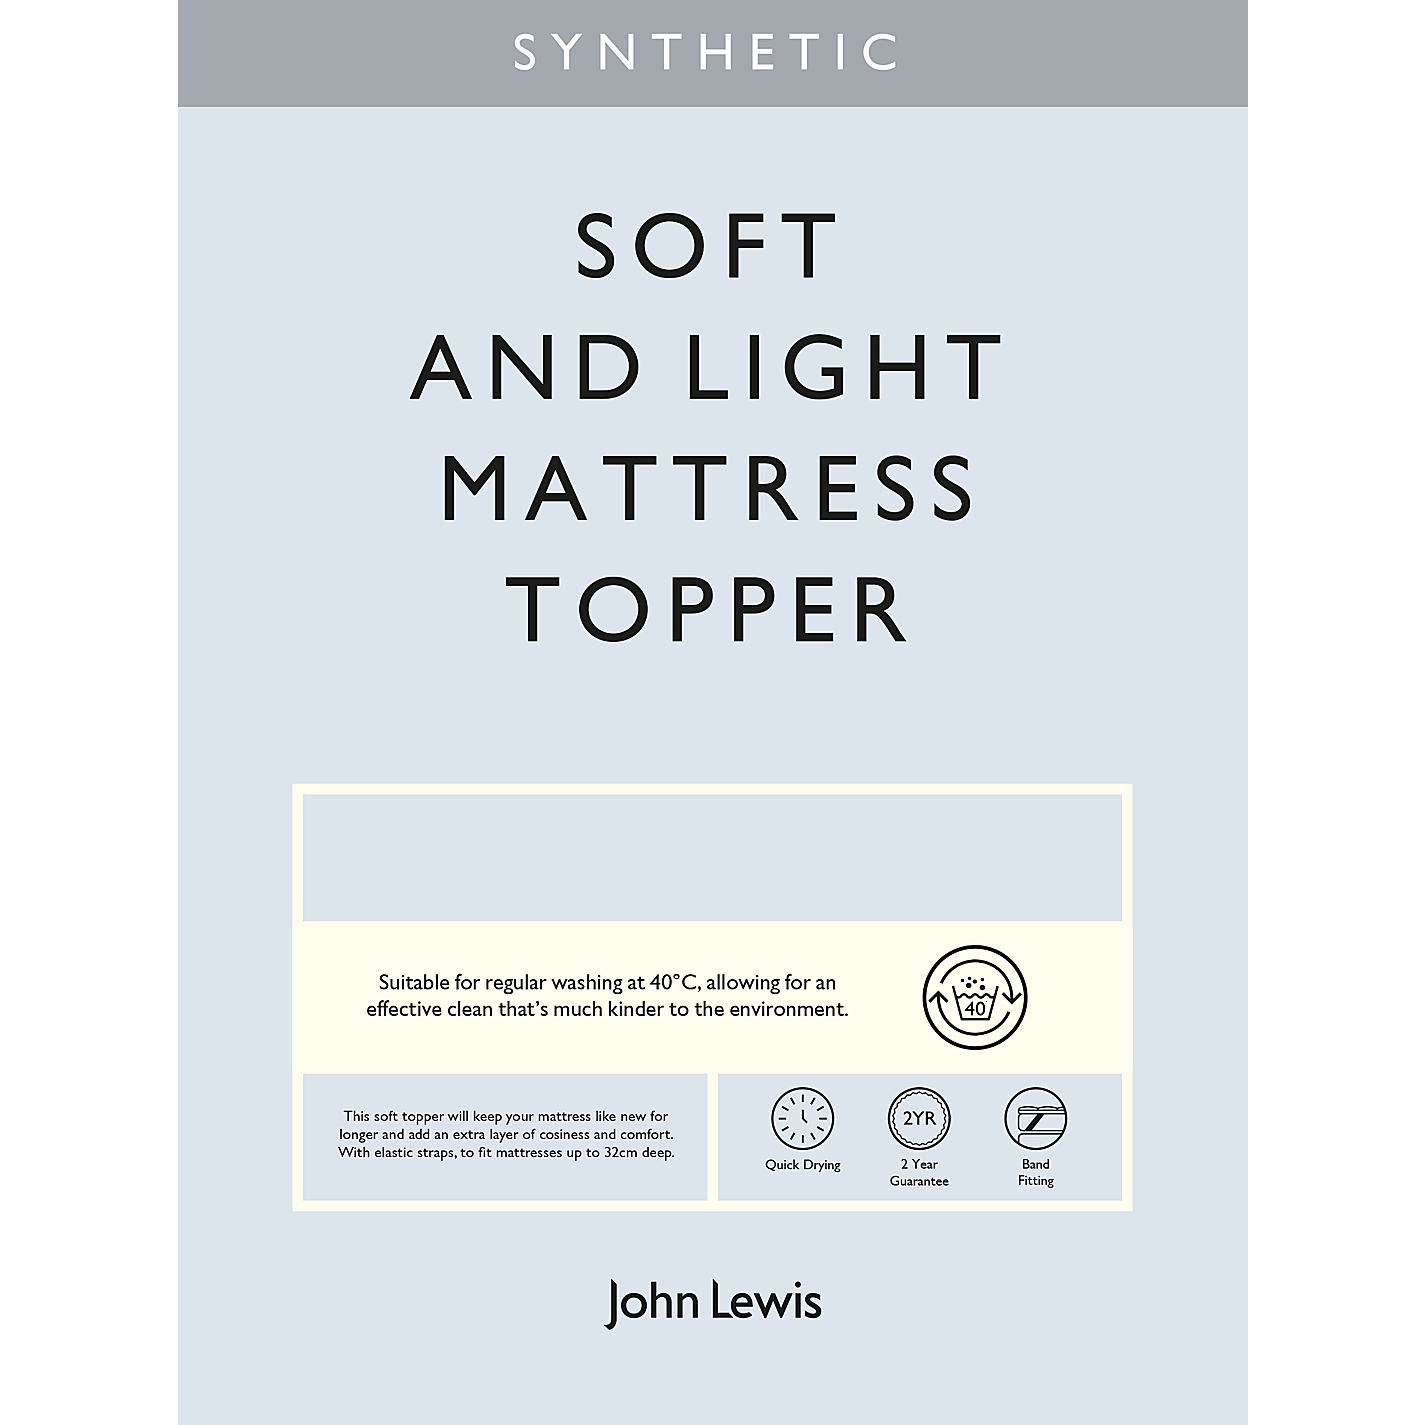 Buy John Lewis Synthetic Soft and Light Mattress Topper